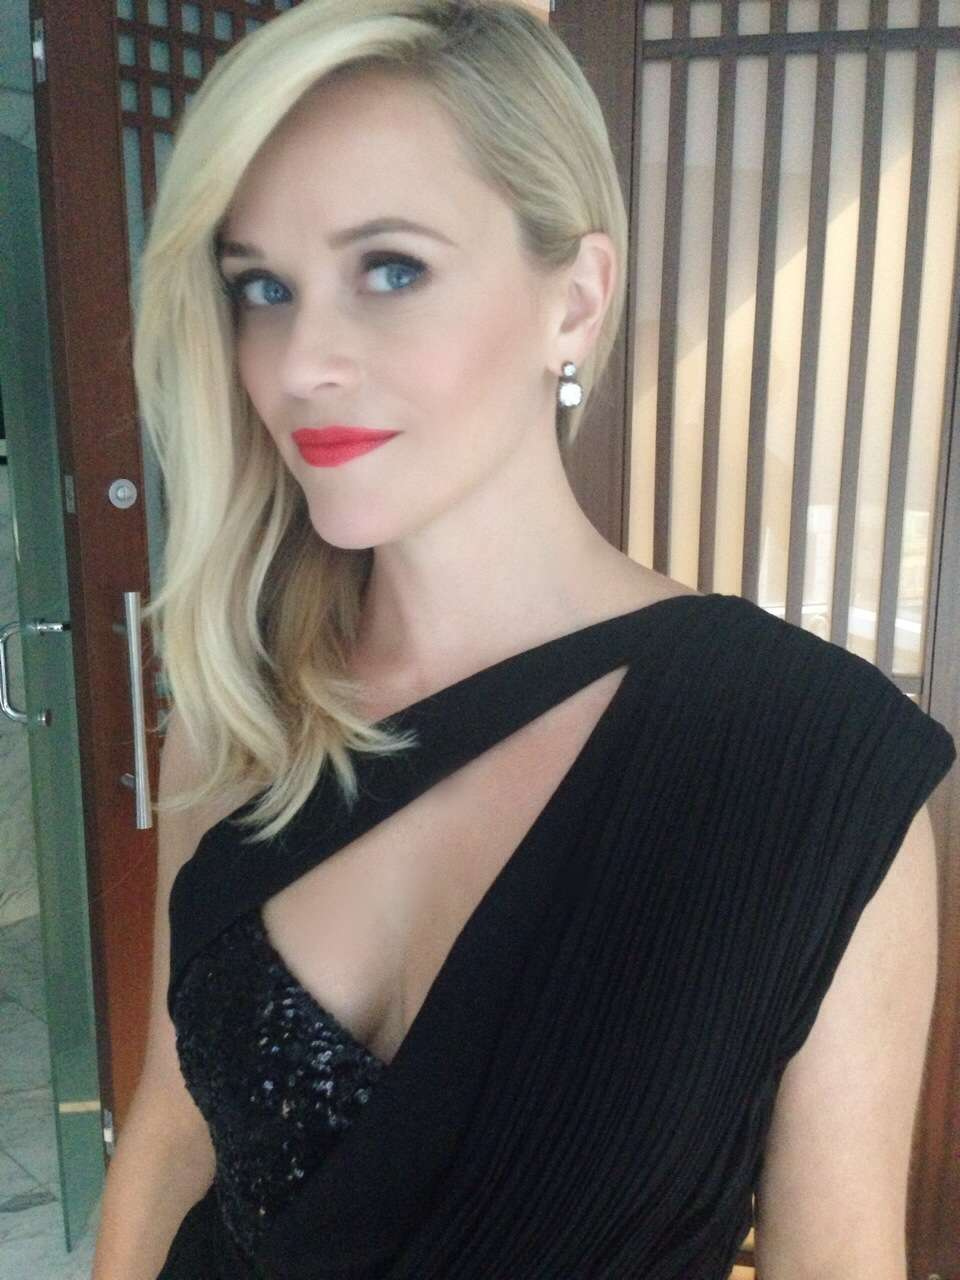 Reese Witherspoon Fappening photo 1